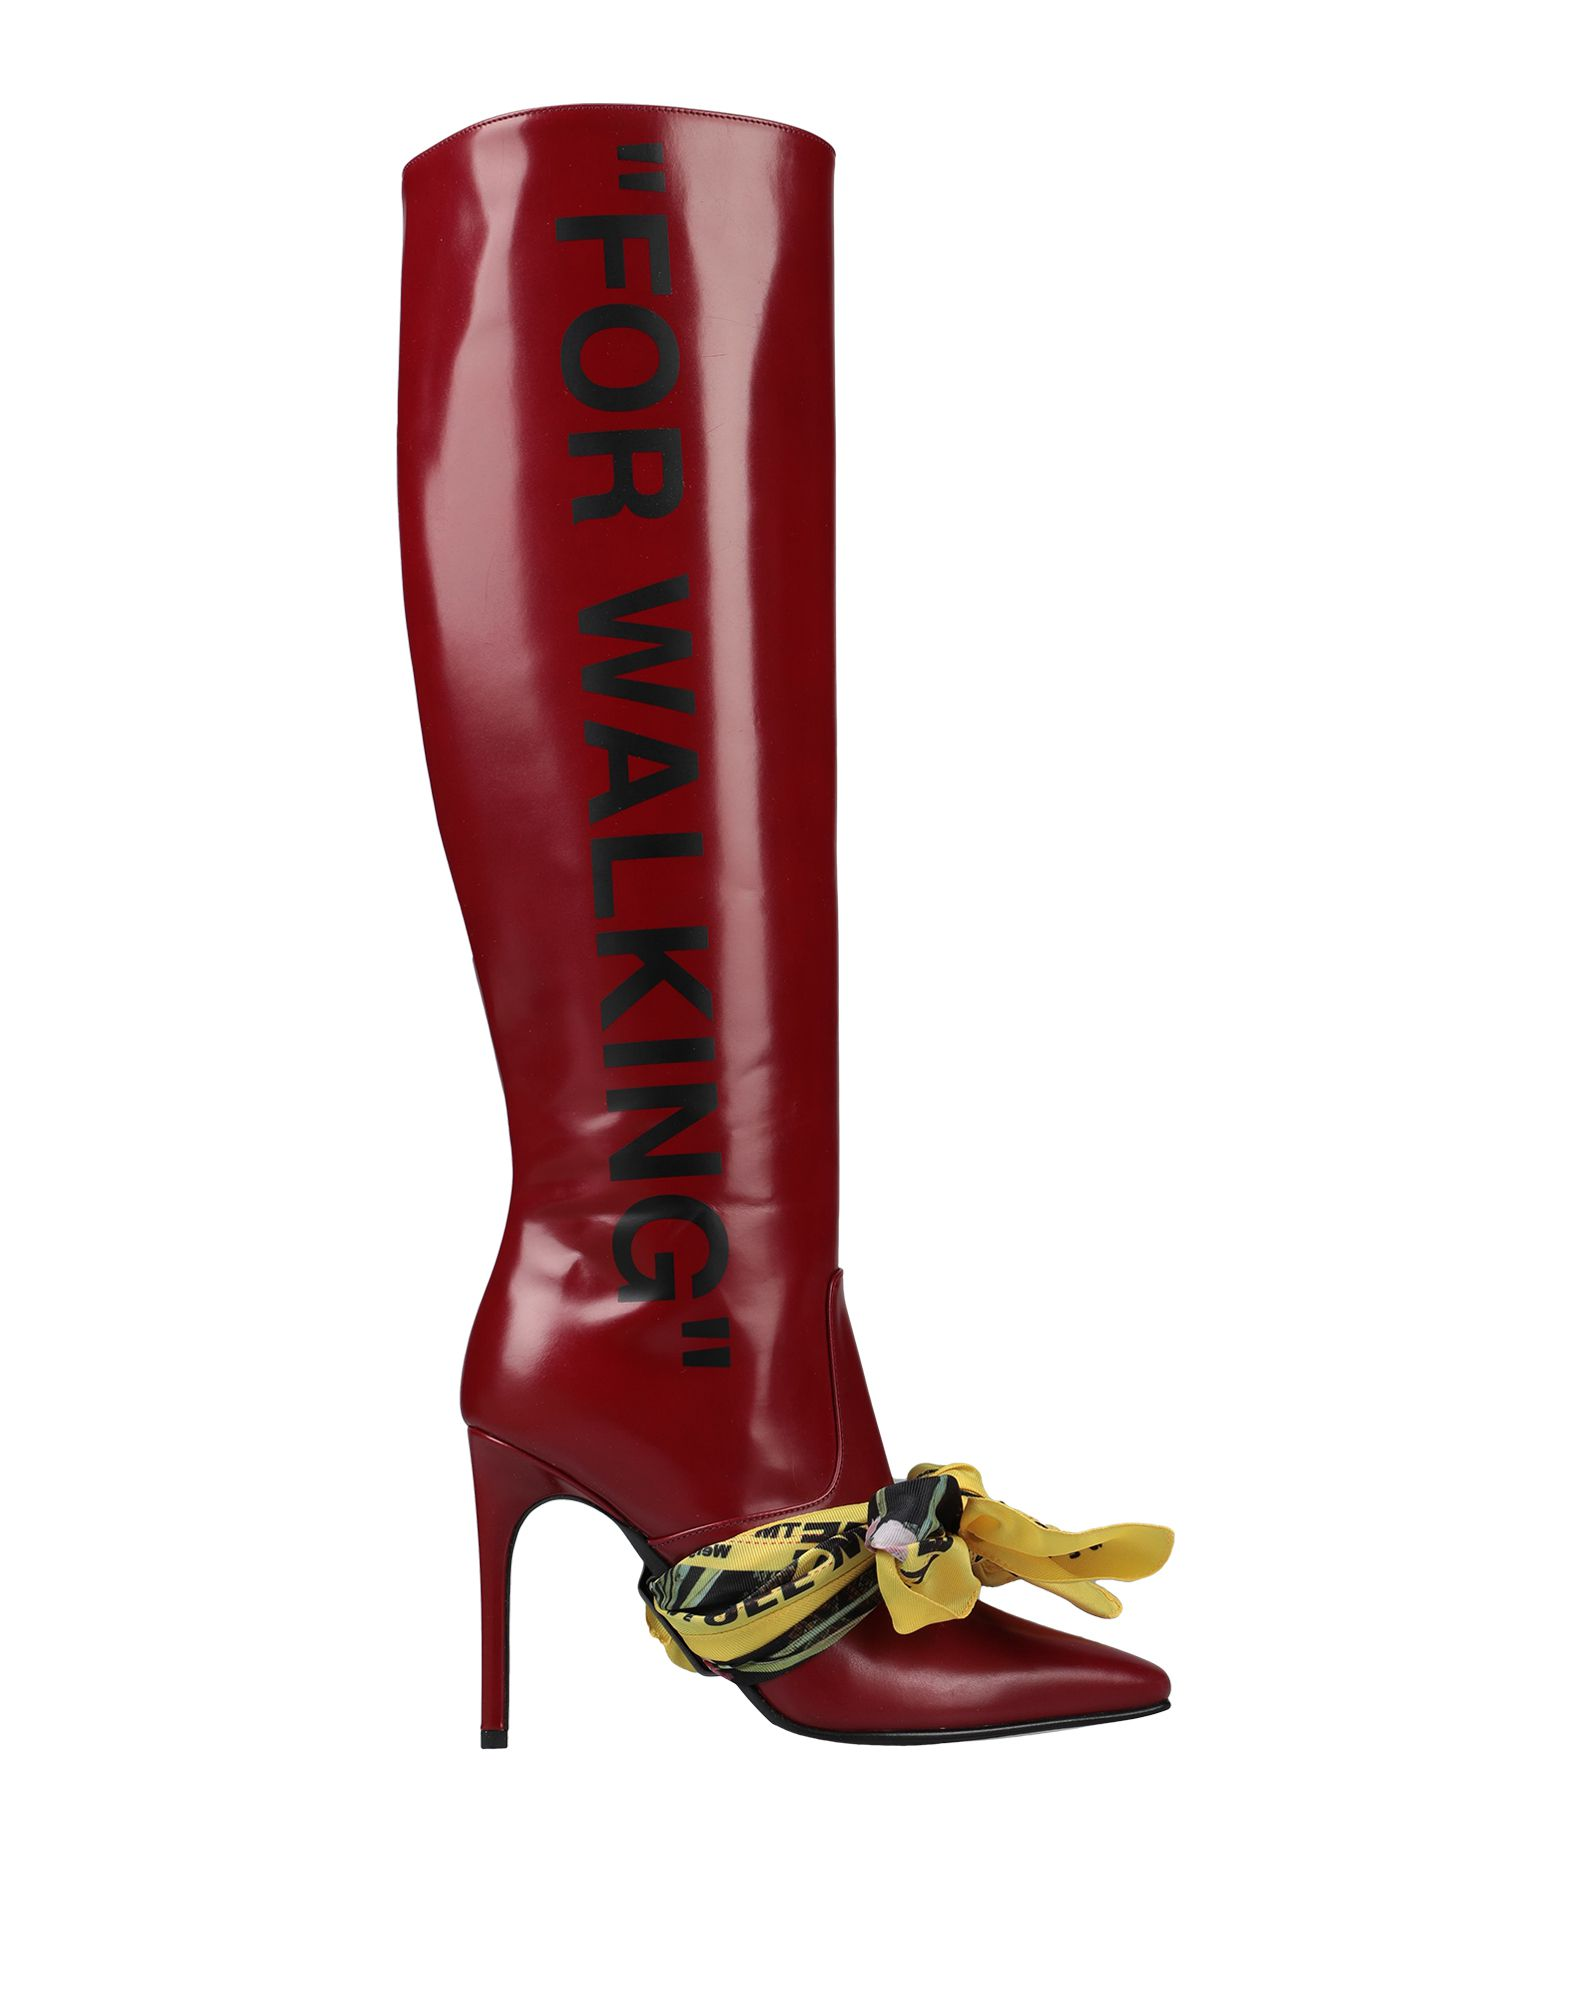 OFF-WHITE™ Boots. polished leather, print, solid color, zip, narrow toeline, spike heel, leather lining, leather sole, contains non-textile parts of animal origin, small sized. Soft Leather